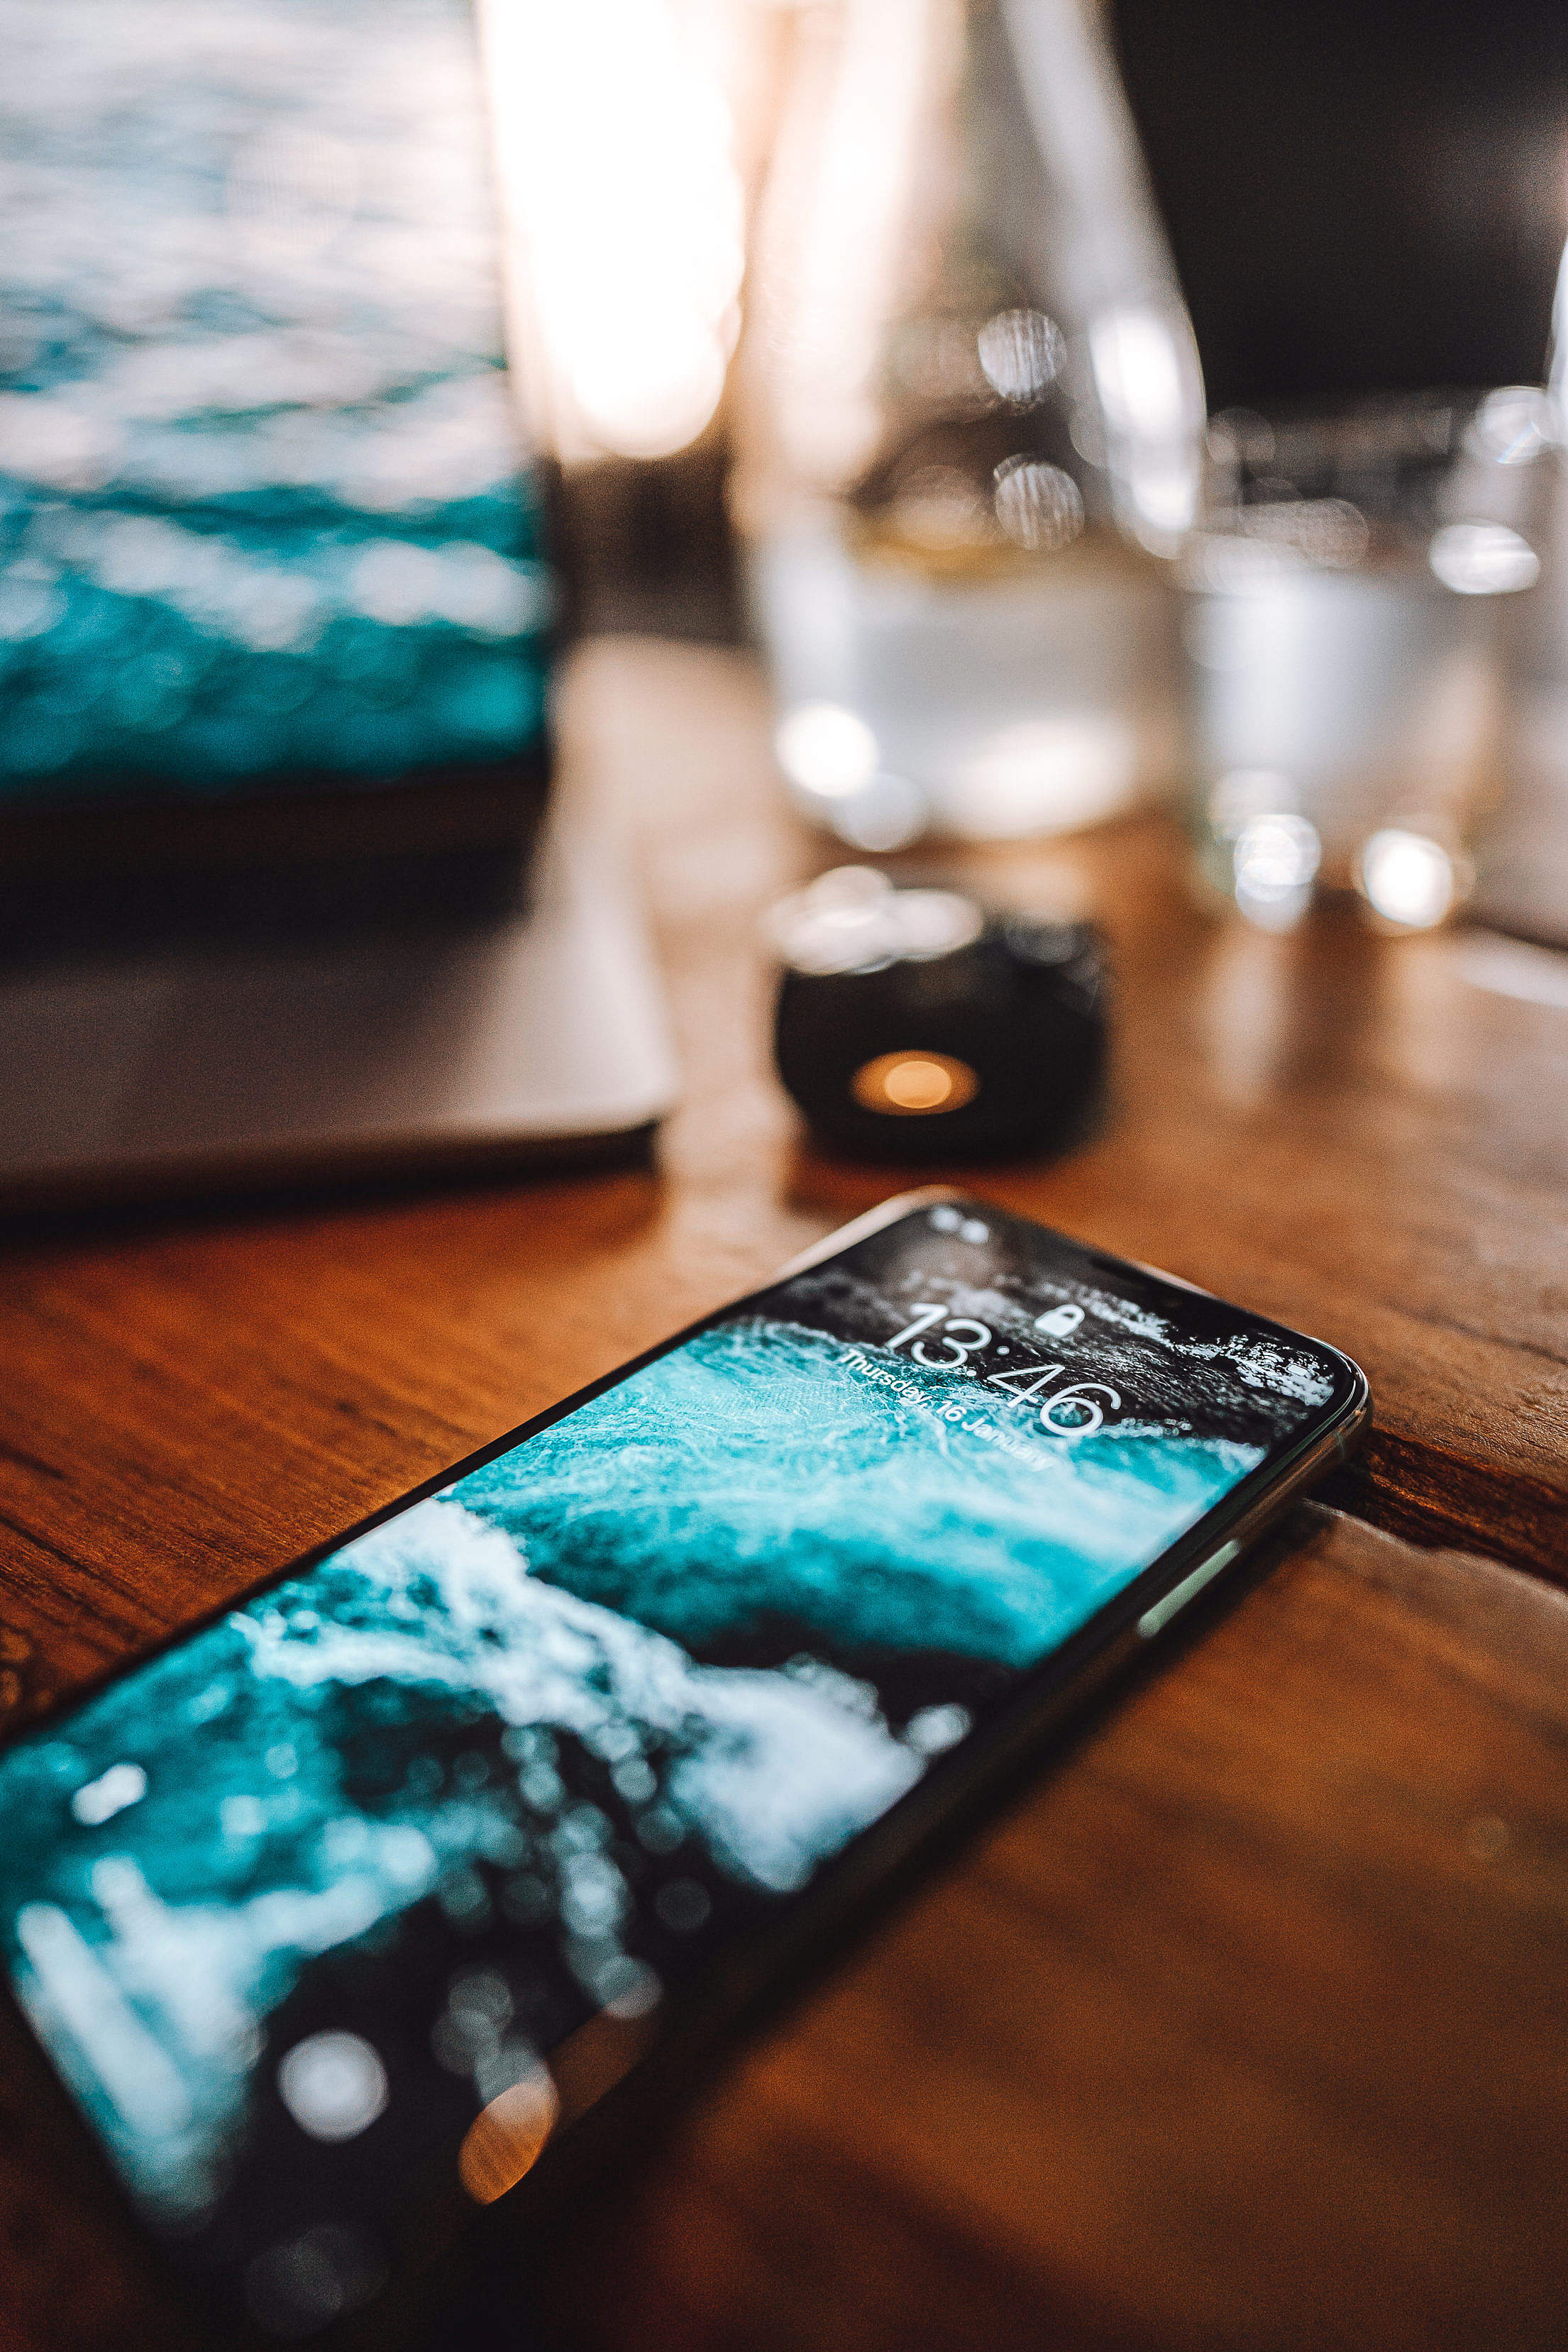 iPhone XS Lying on The Table Free Stock Photo